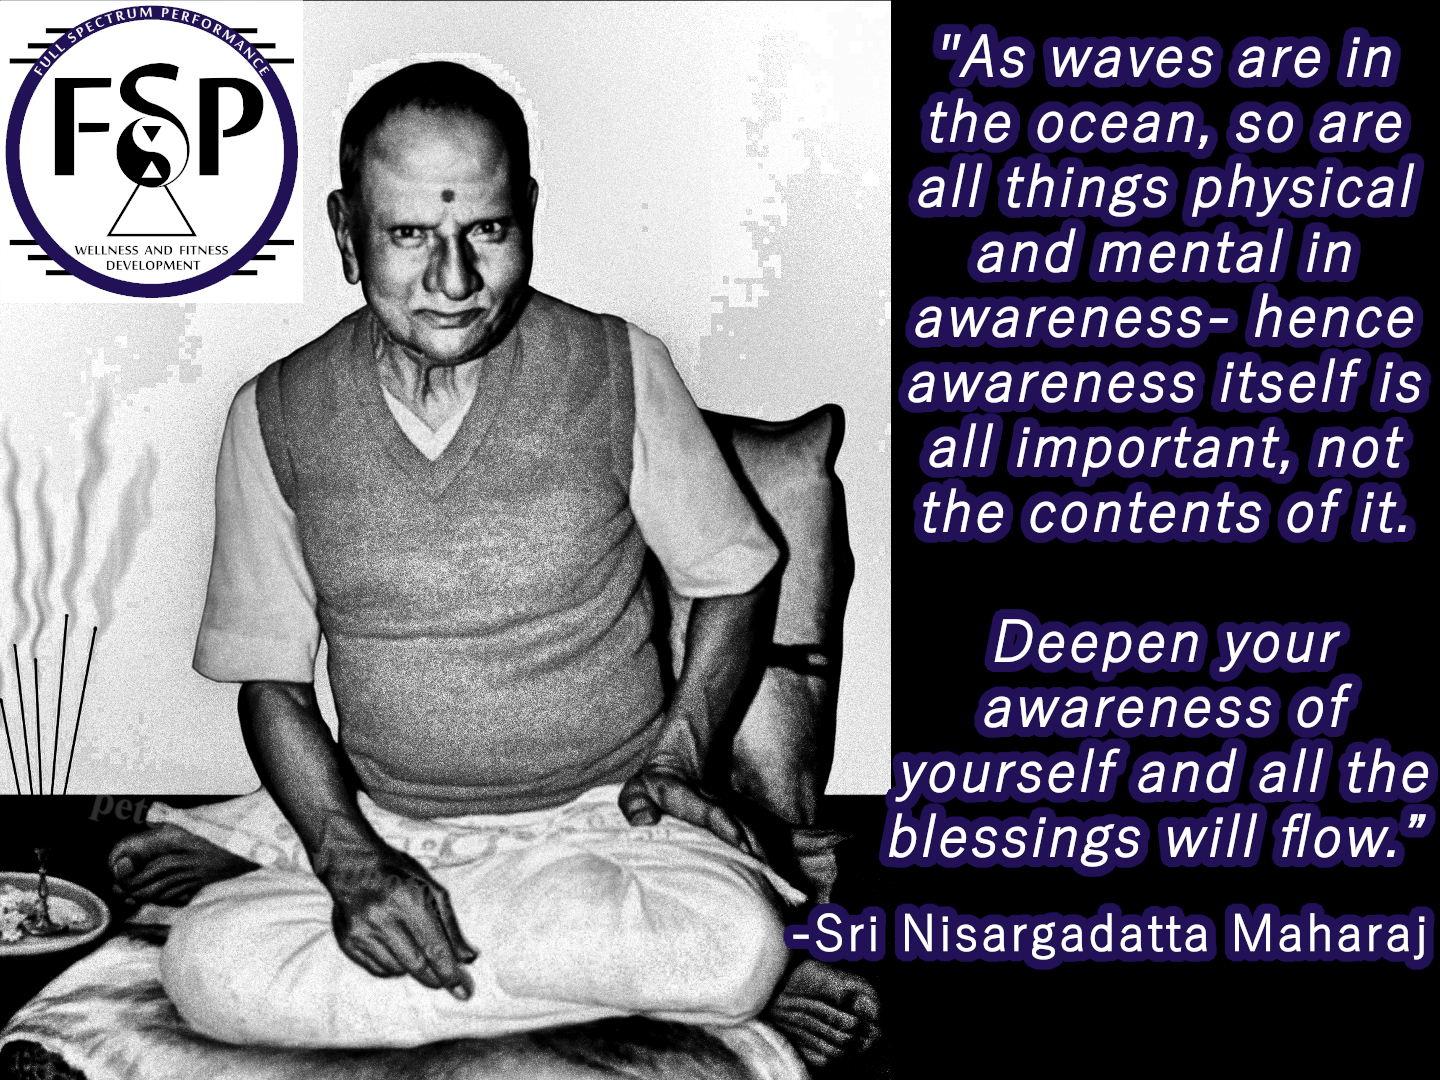 """As waves are in the ocean, so are all things physical and mental in awareness…"" -Sri Nisargadatta Maharaj [1440 x 1080]"